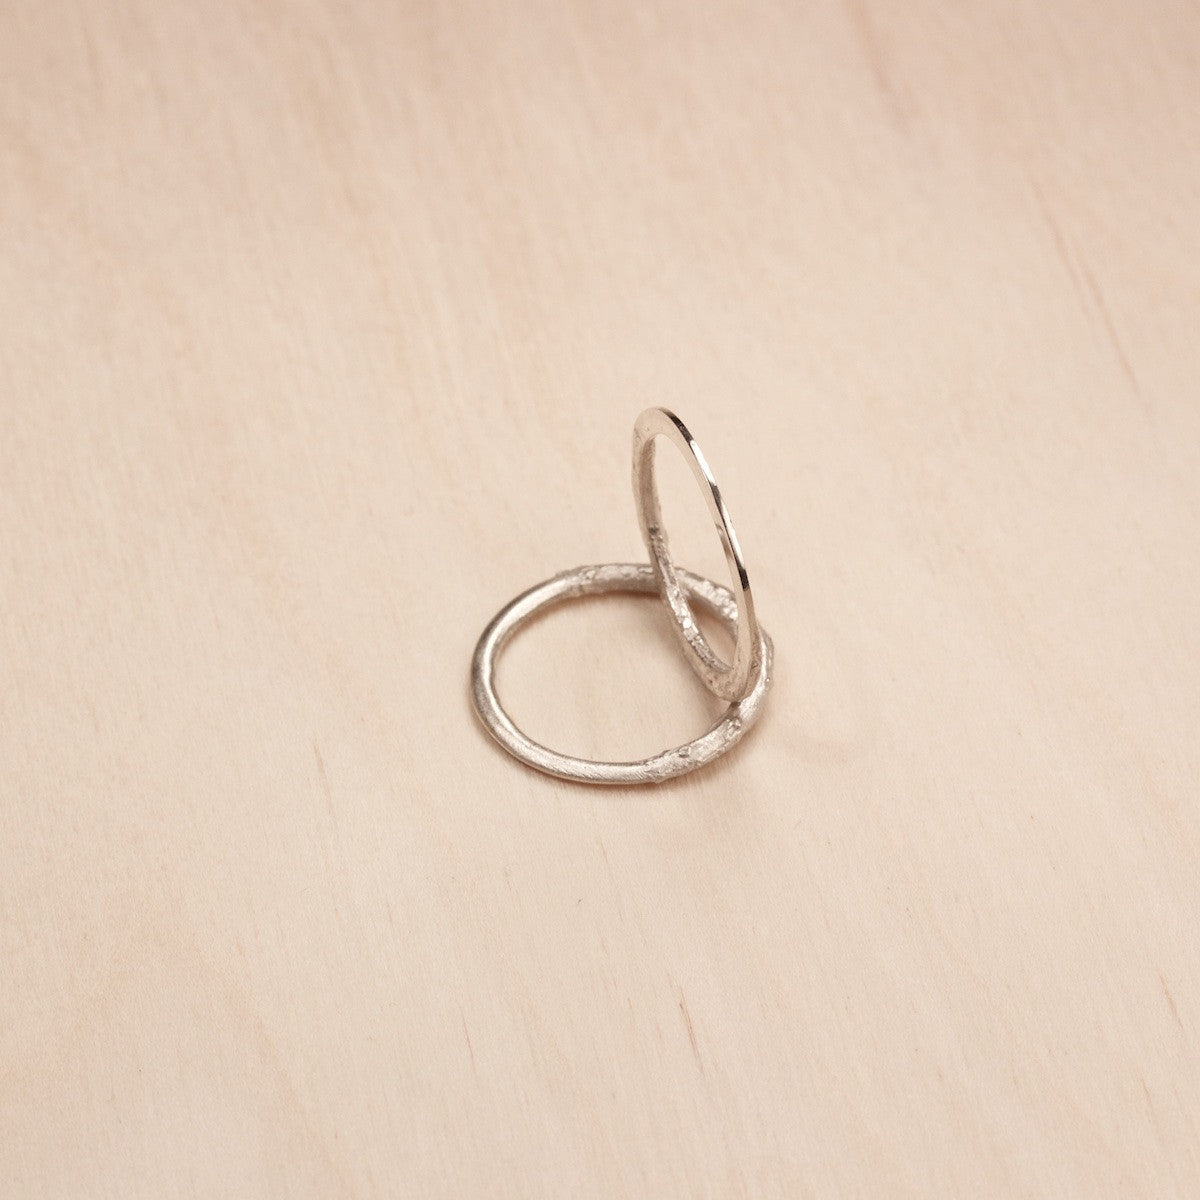 'Clay Lilite' Fairtrade silver / gold ring